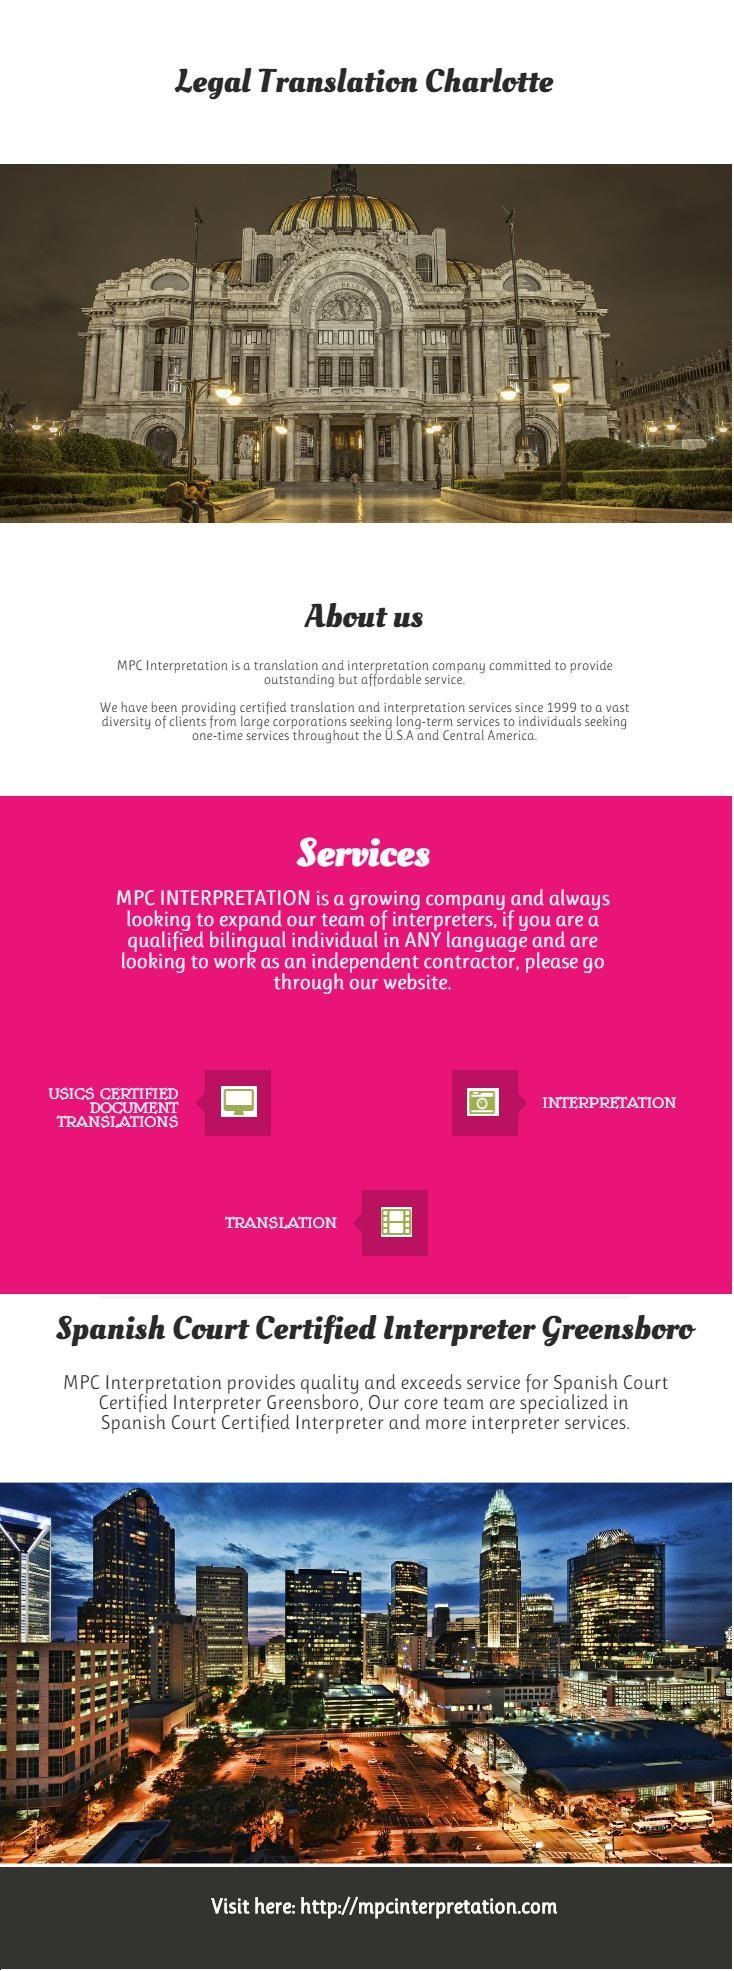 Are you searching for Spanish Certified Translator in Concord? MPC Interpretation provides Spanish Certified Translator in Concord. We have experienced team to provide the high quality of Spanish Certified Translator in Concord. For more information visit our website.